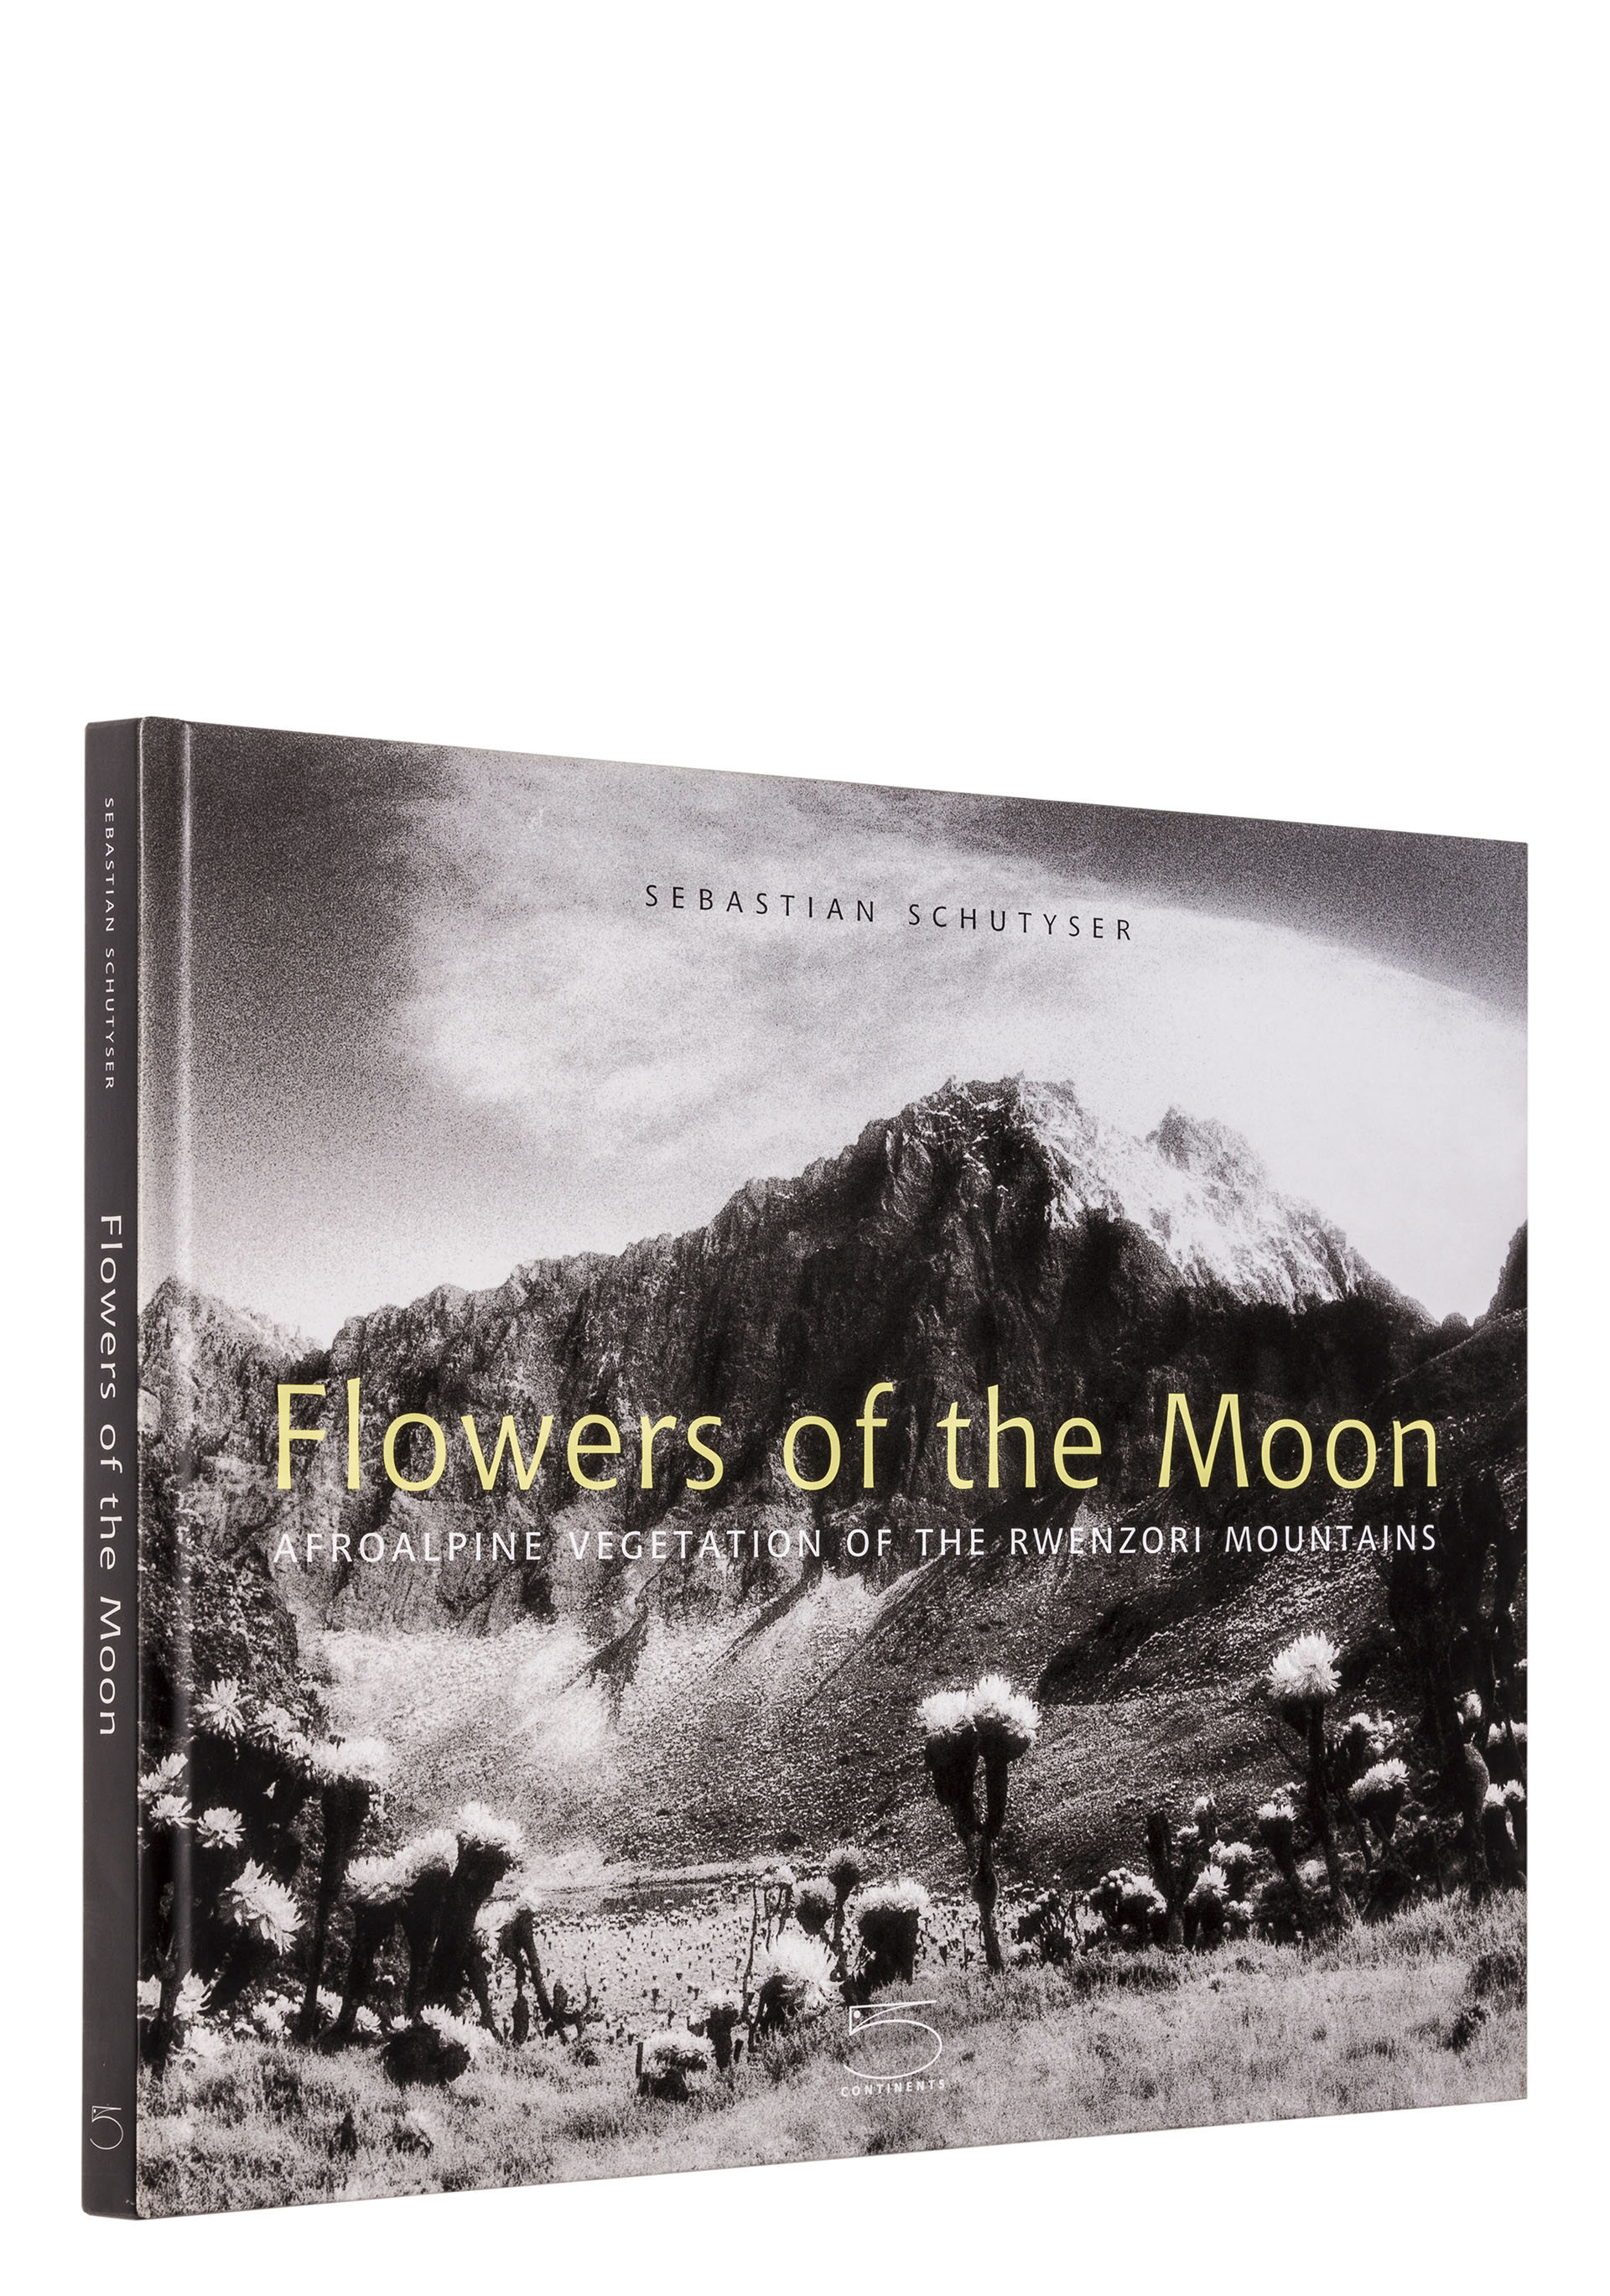 Flowers of the Moon